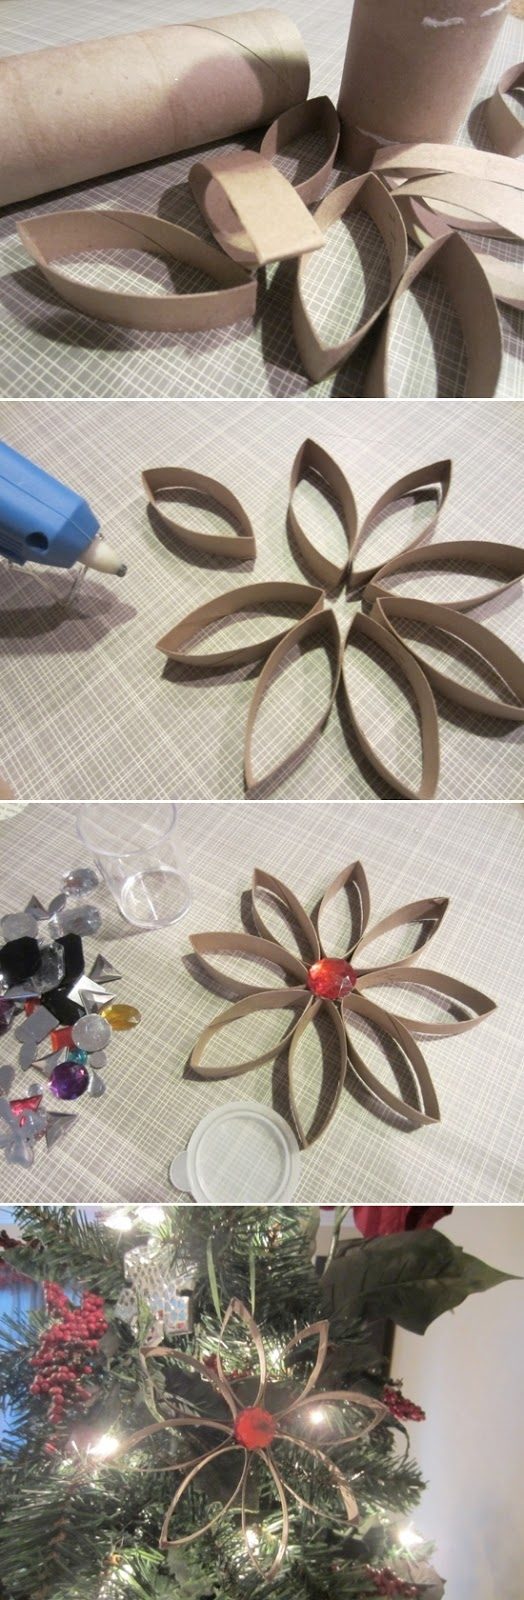 Toilet Paper Roll Christmas Snowflake Crafts   21 Toilet Paper Roll Craft Ideas